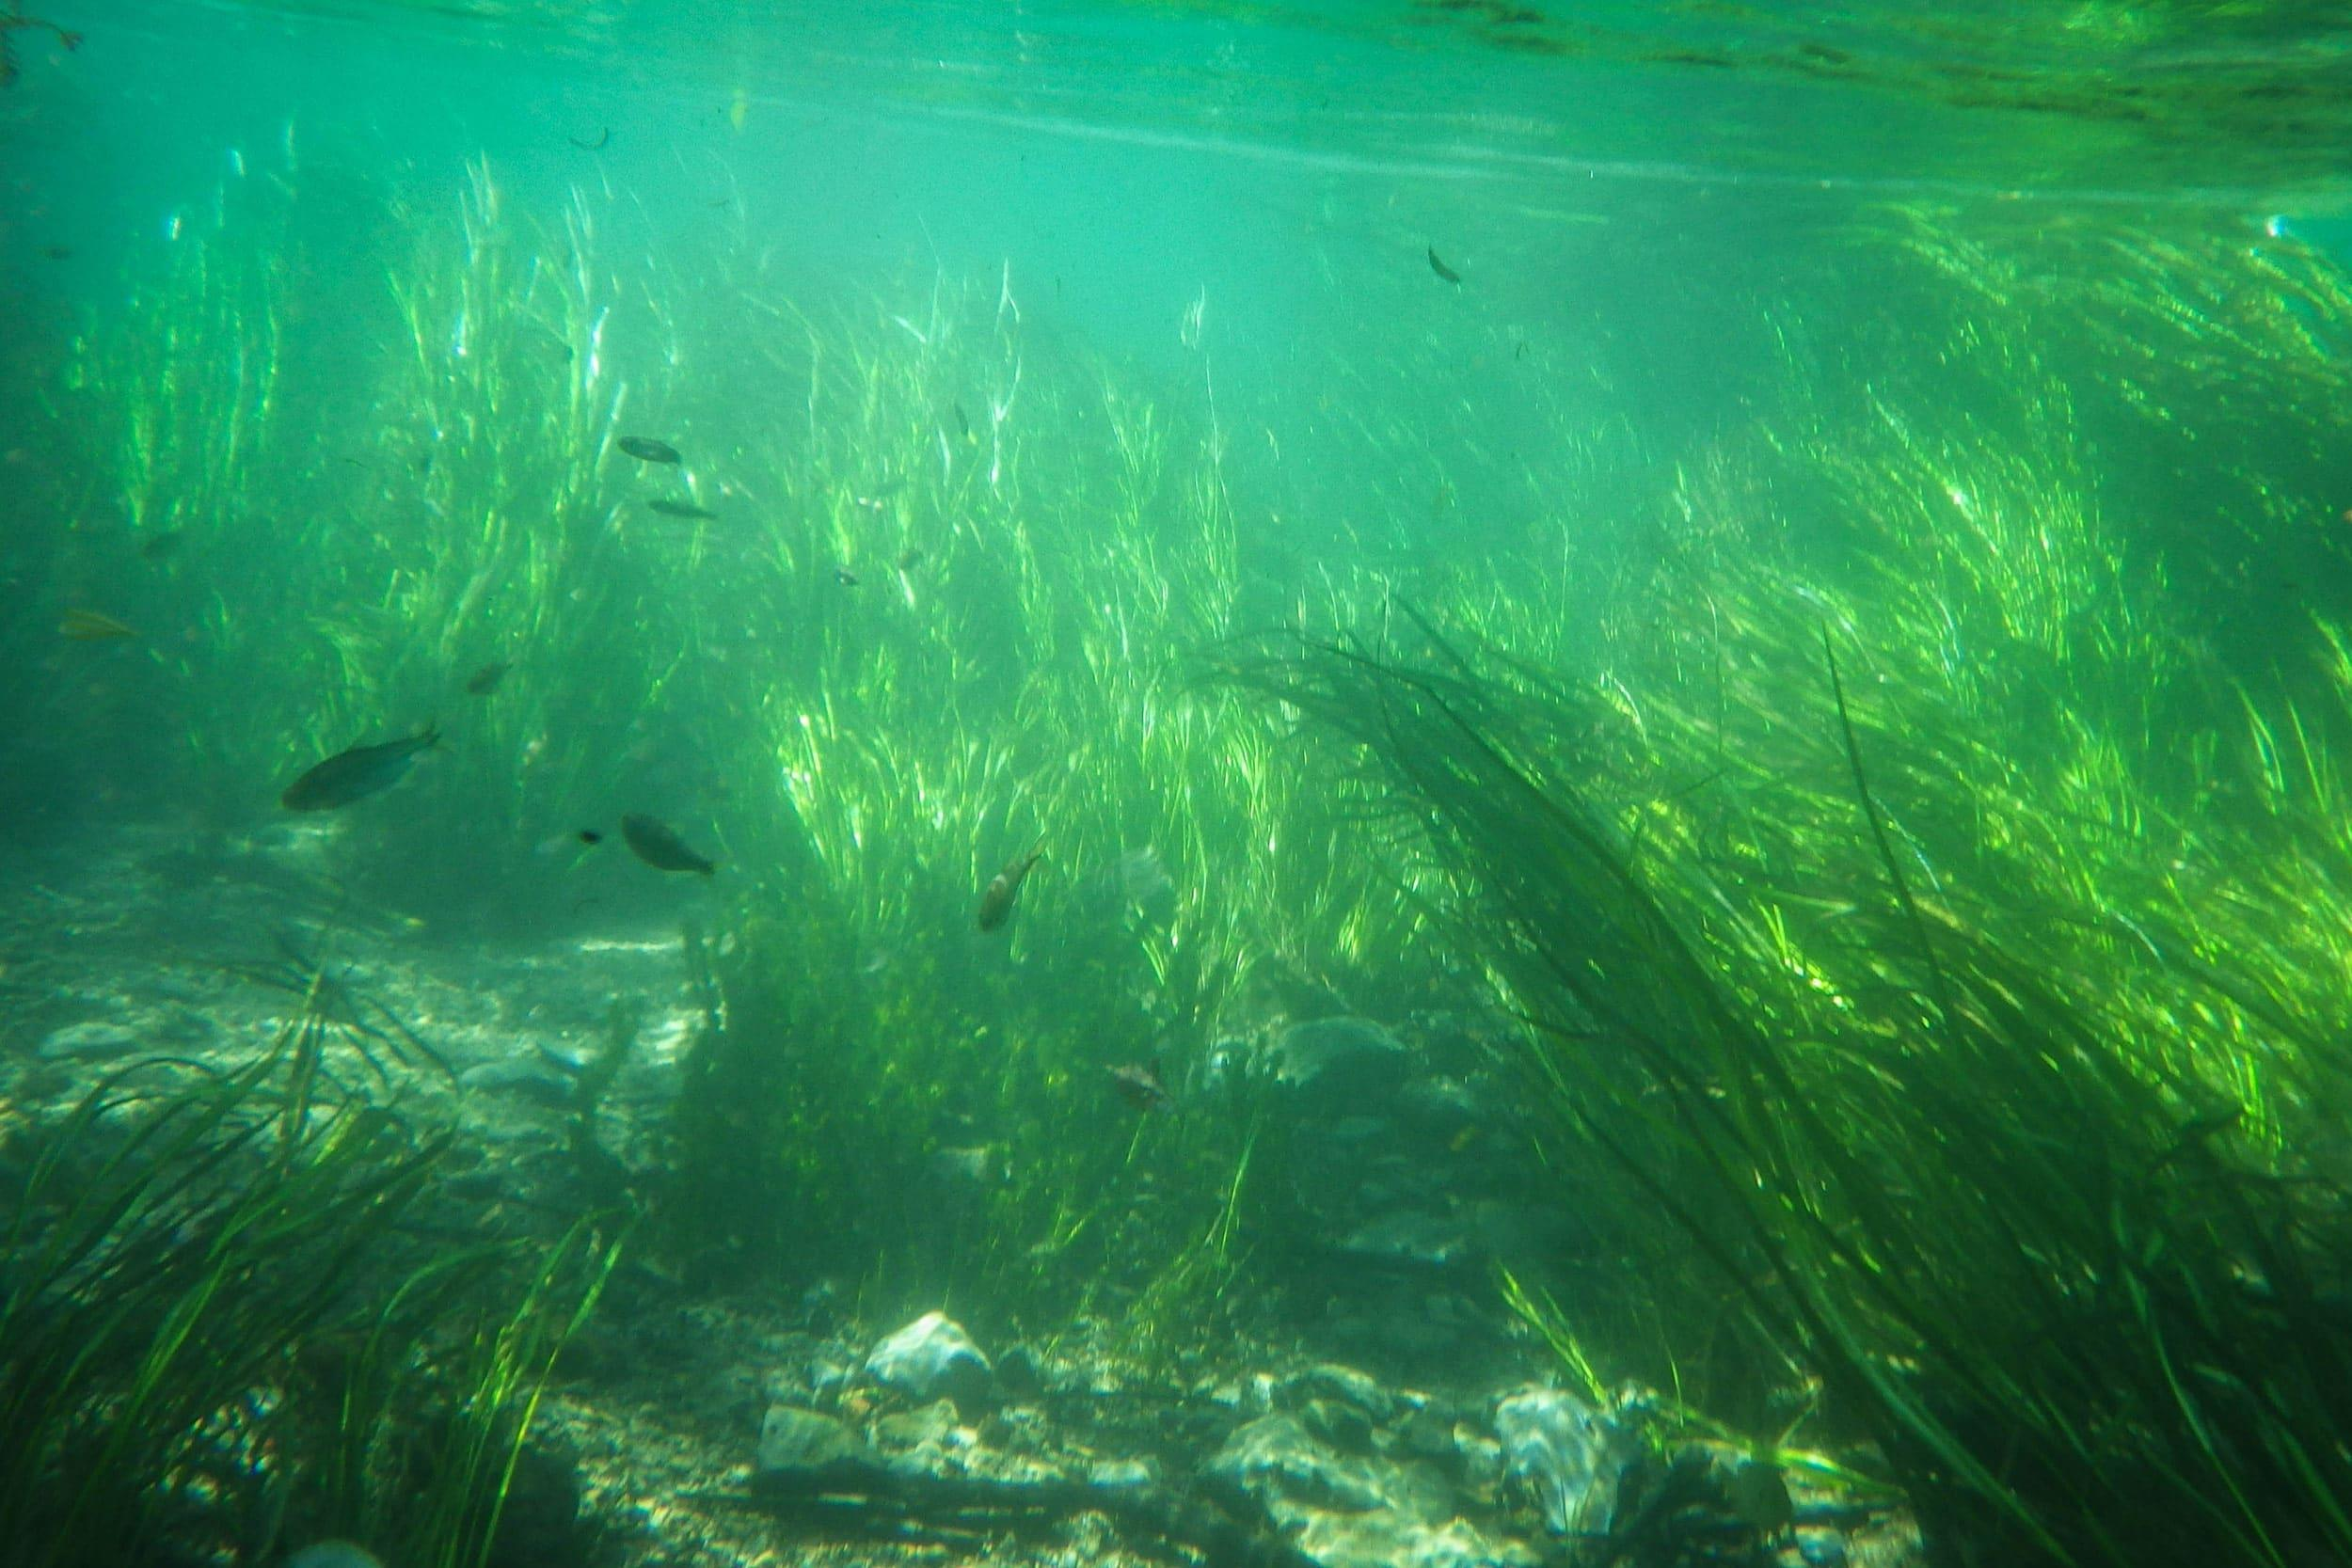 Underwater photo of Texas wild rice in shallow, clear water with gravel substrate in the San Marcos River